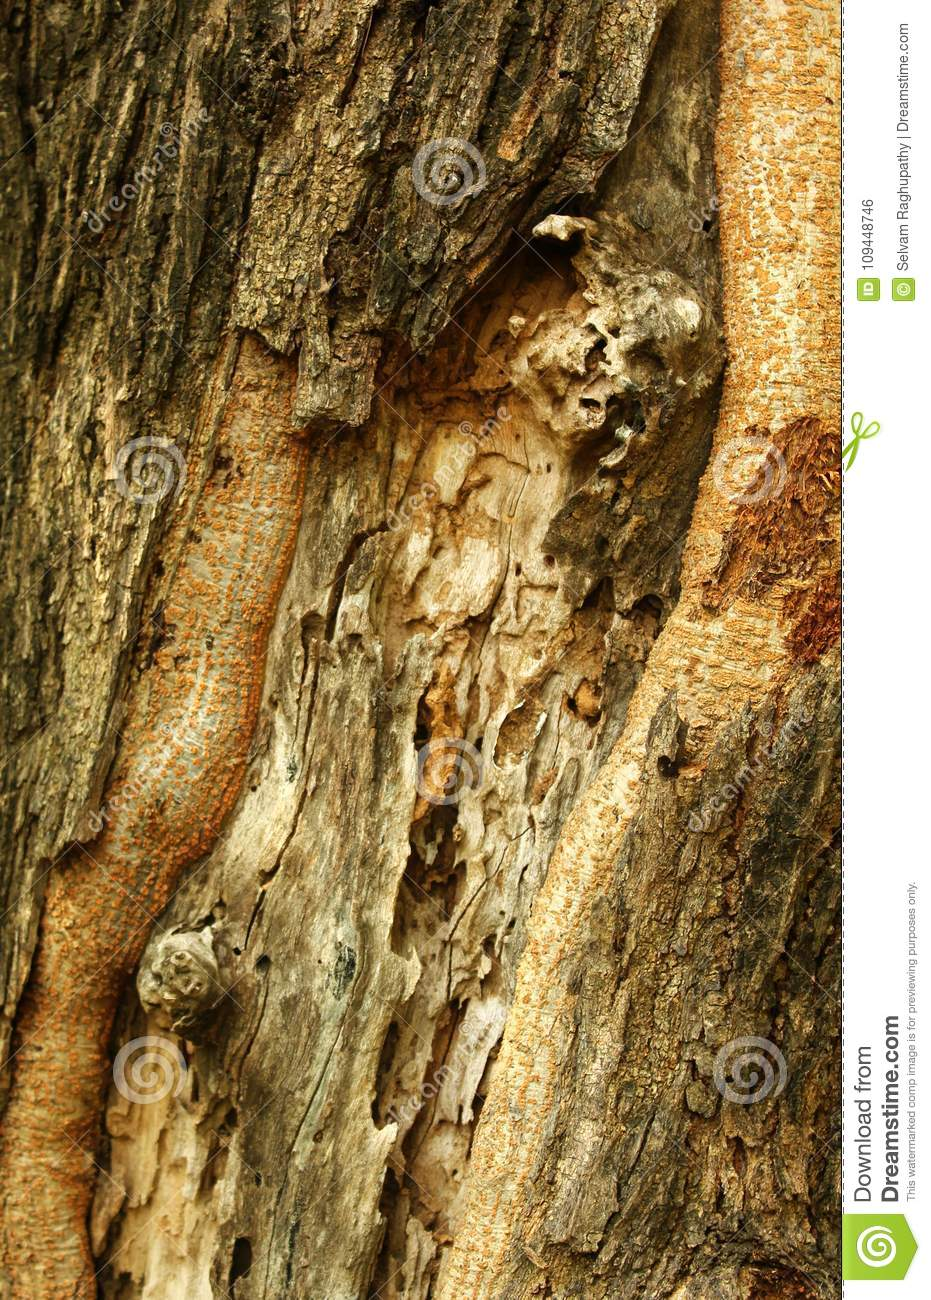 A Tree Skin Stem Texture Background Stock Photo Image Of Peaceful Damaged 109448746